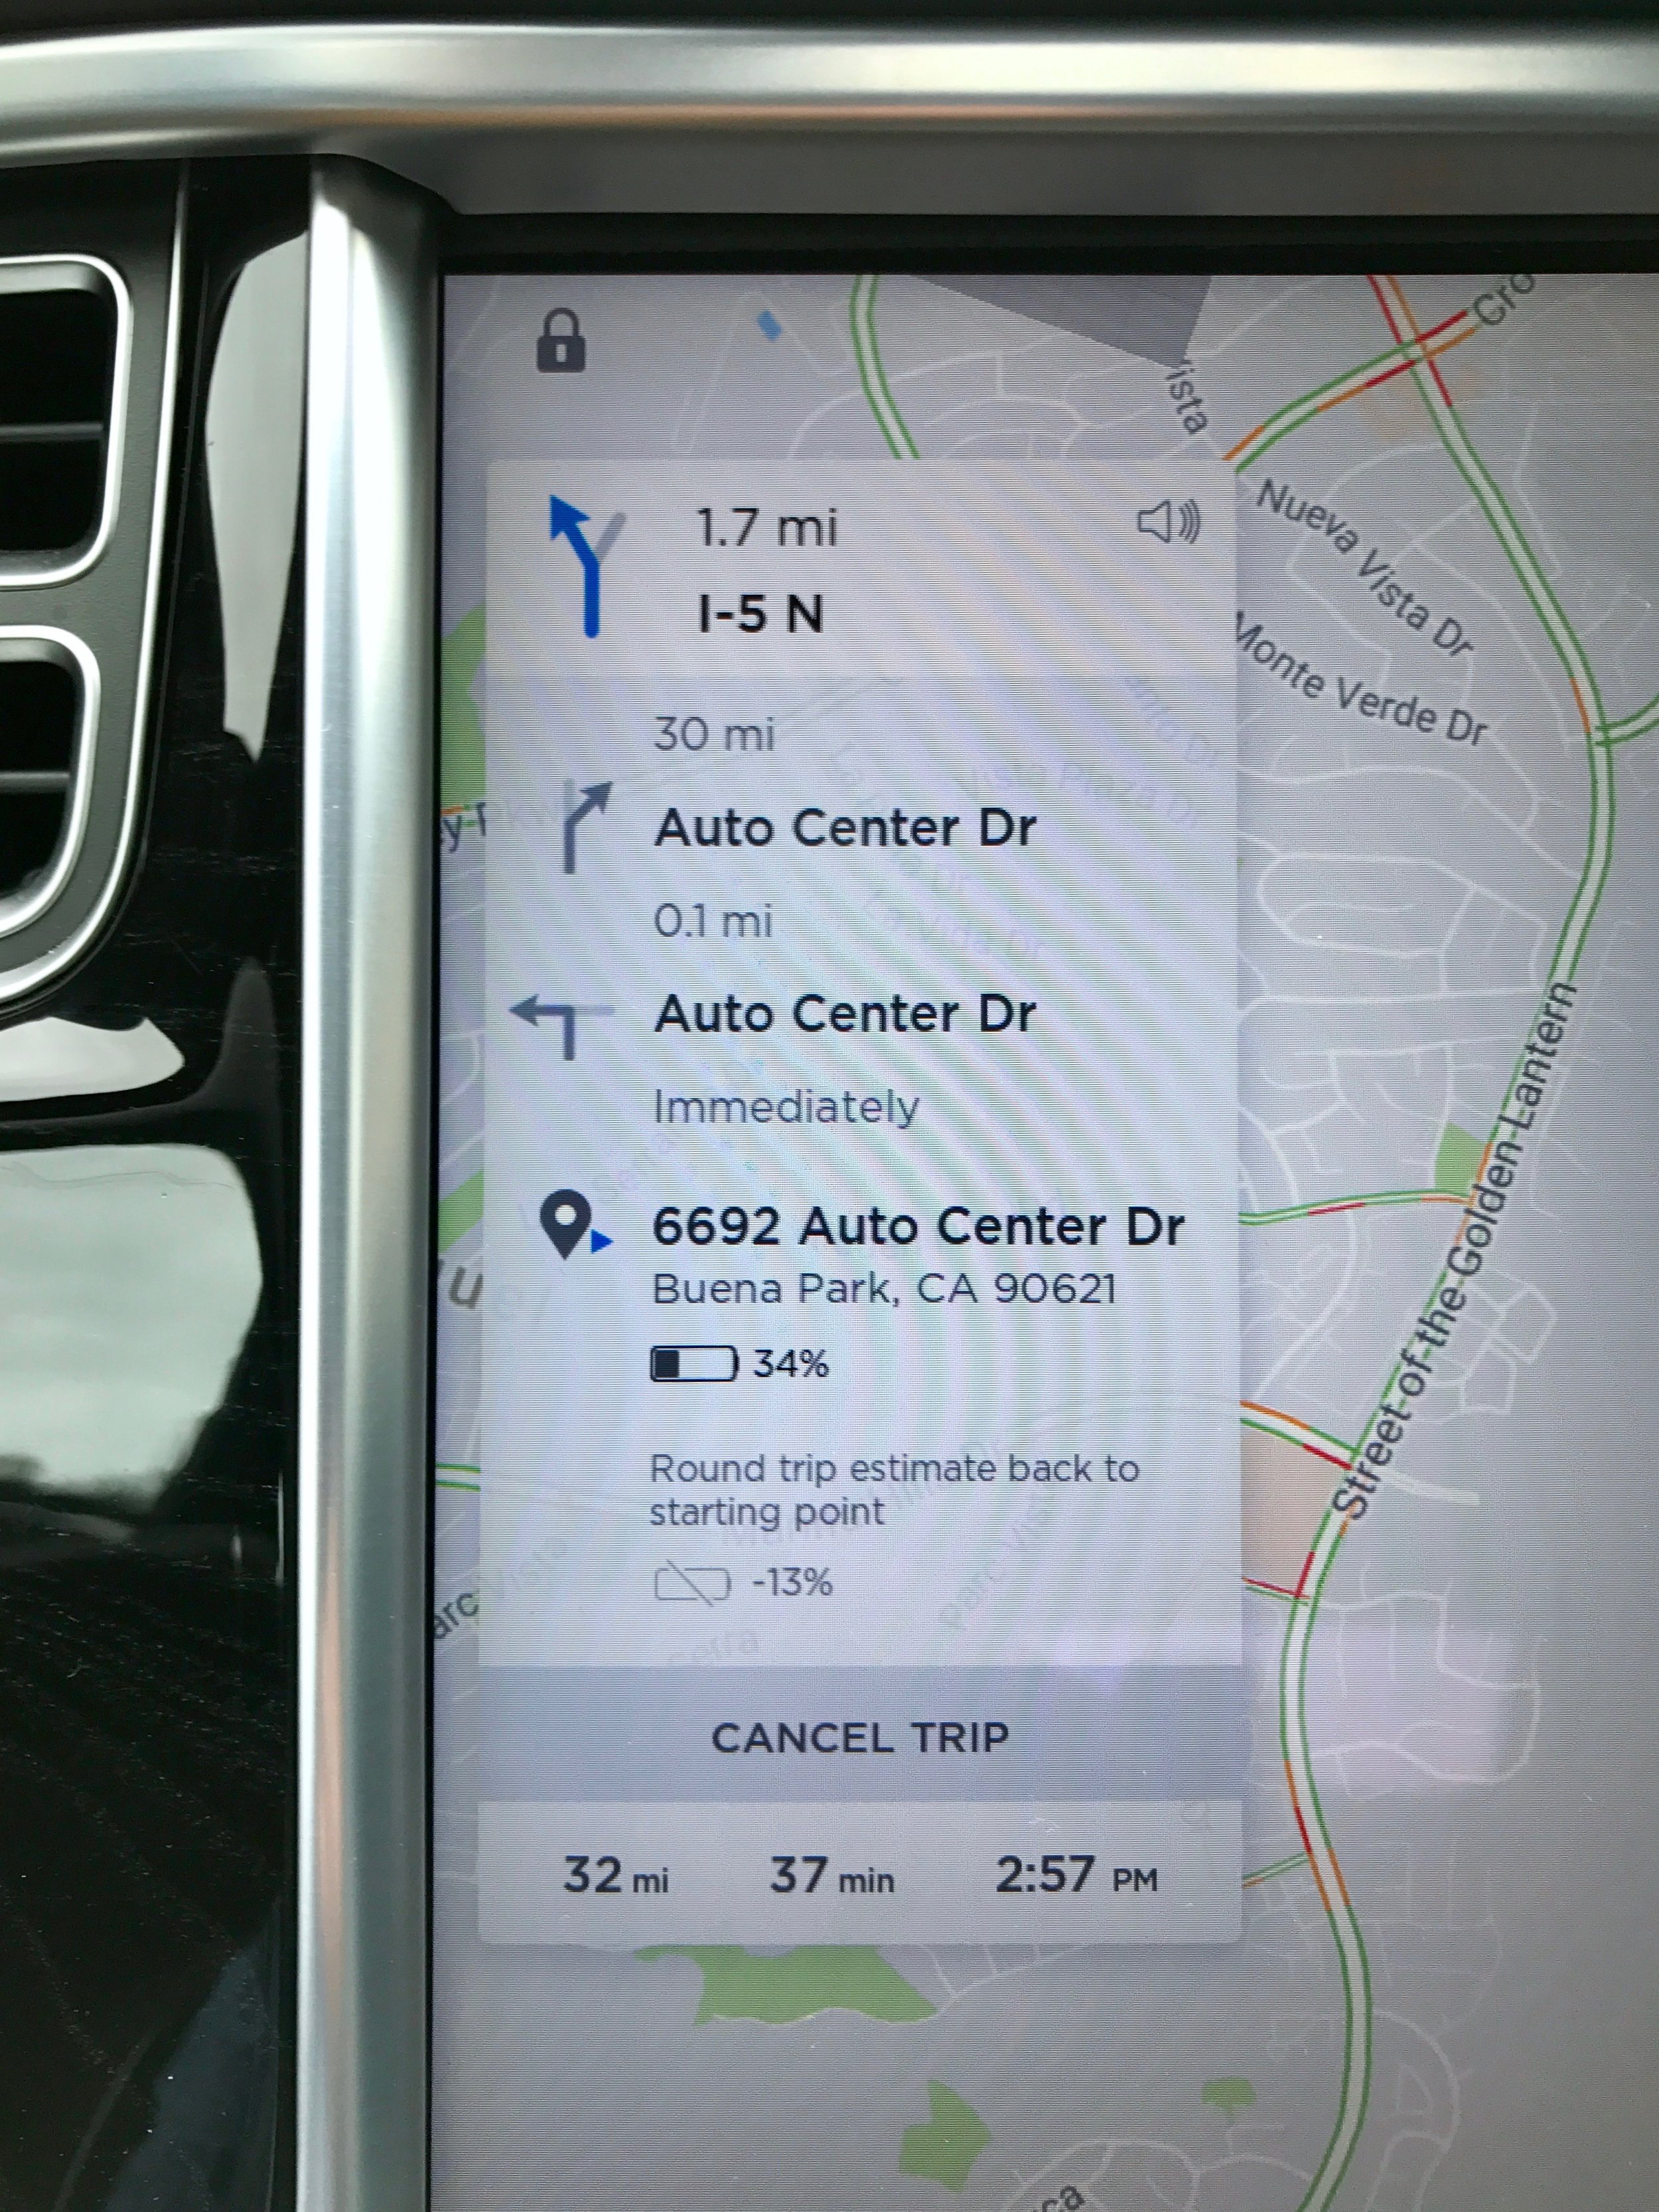 The navigation system will approximate the battery charge left once you reach your destination. If you don't have enough charge to get there, the navigation will automatically route you to the Supercharger along the way.